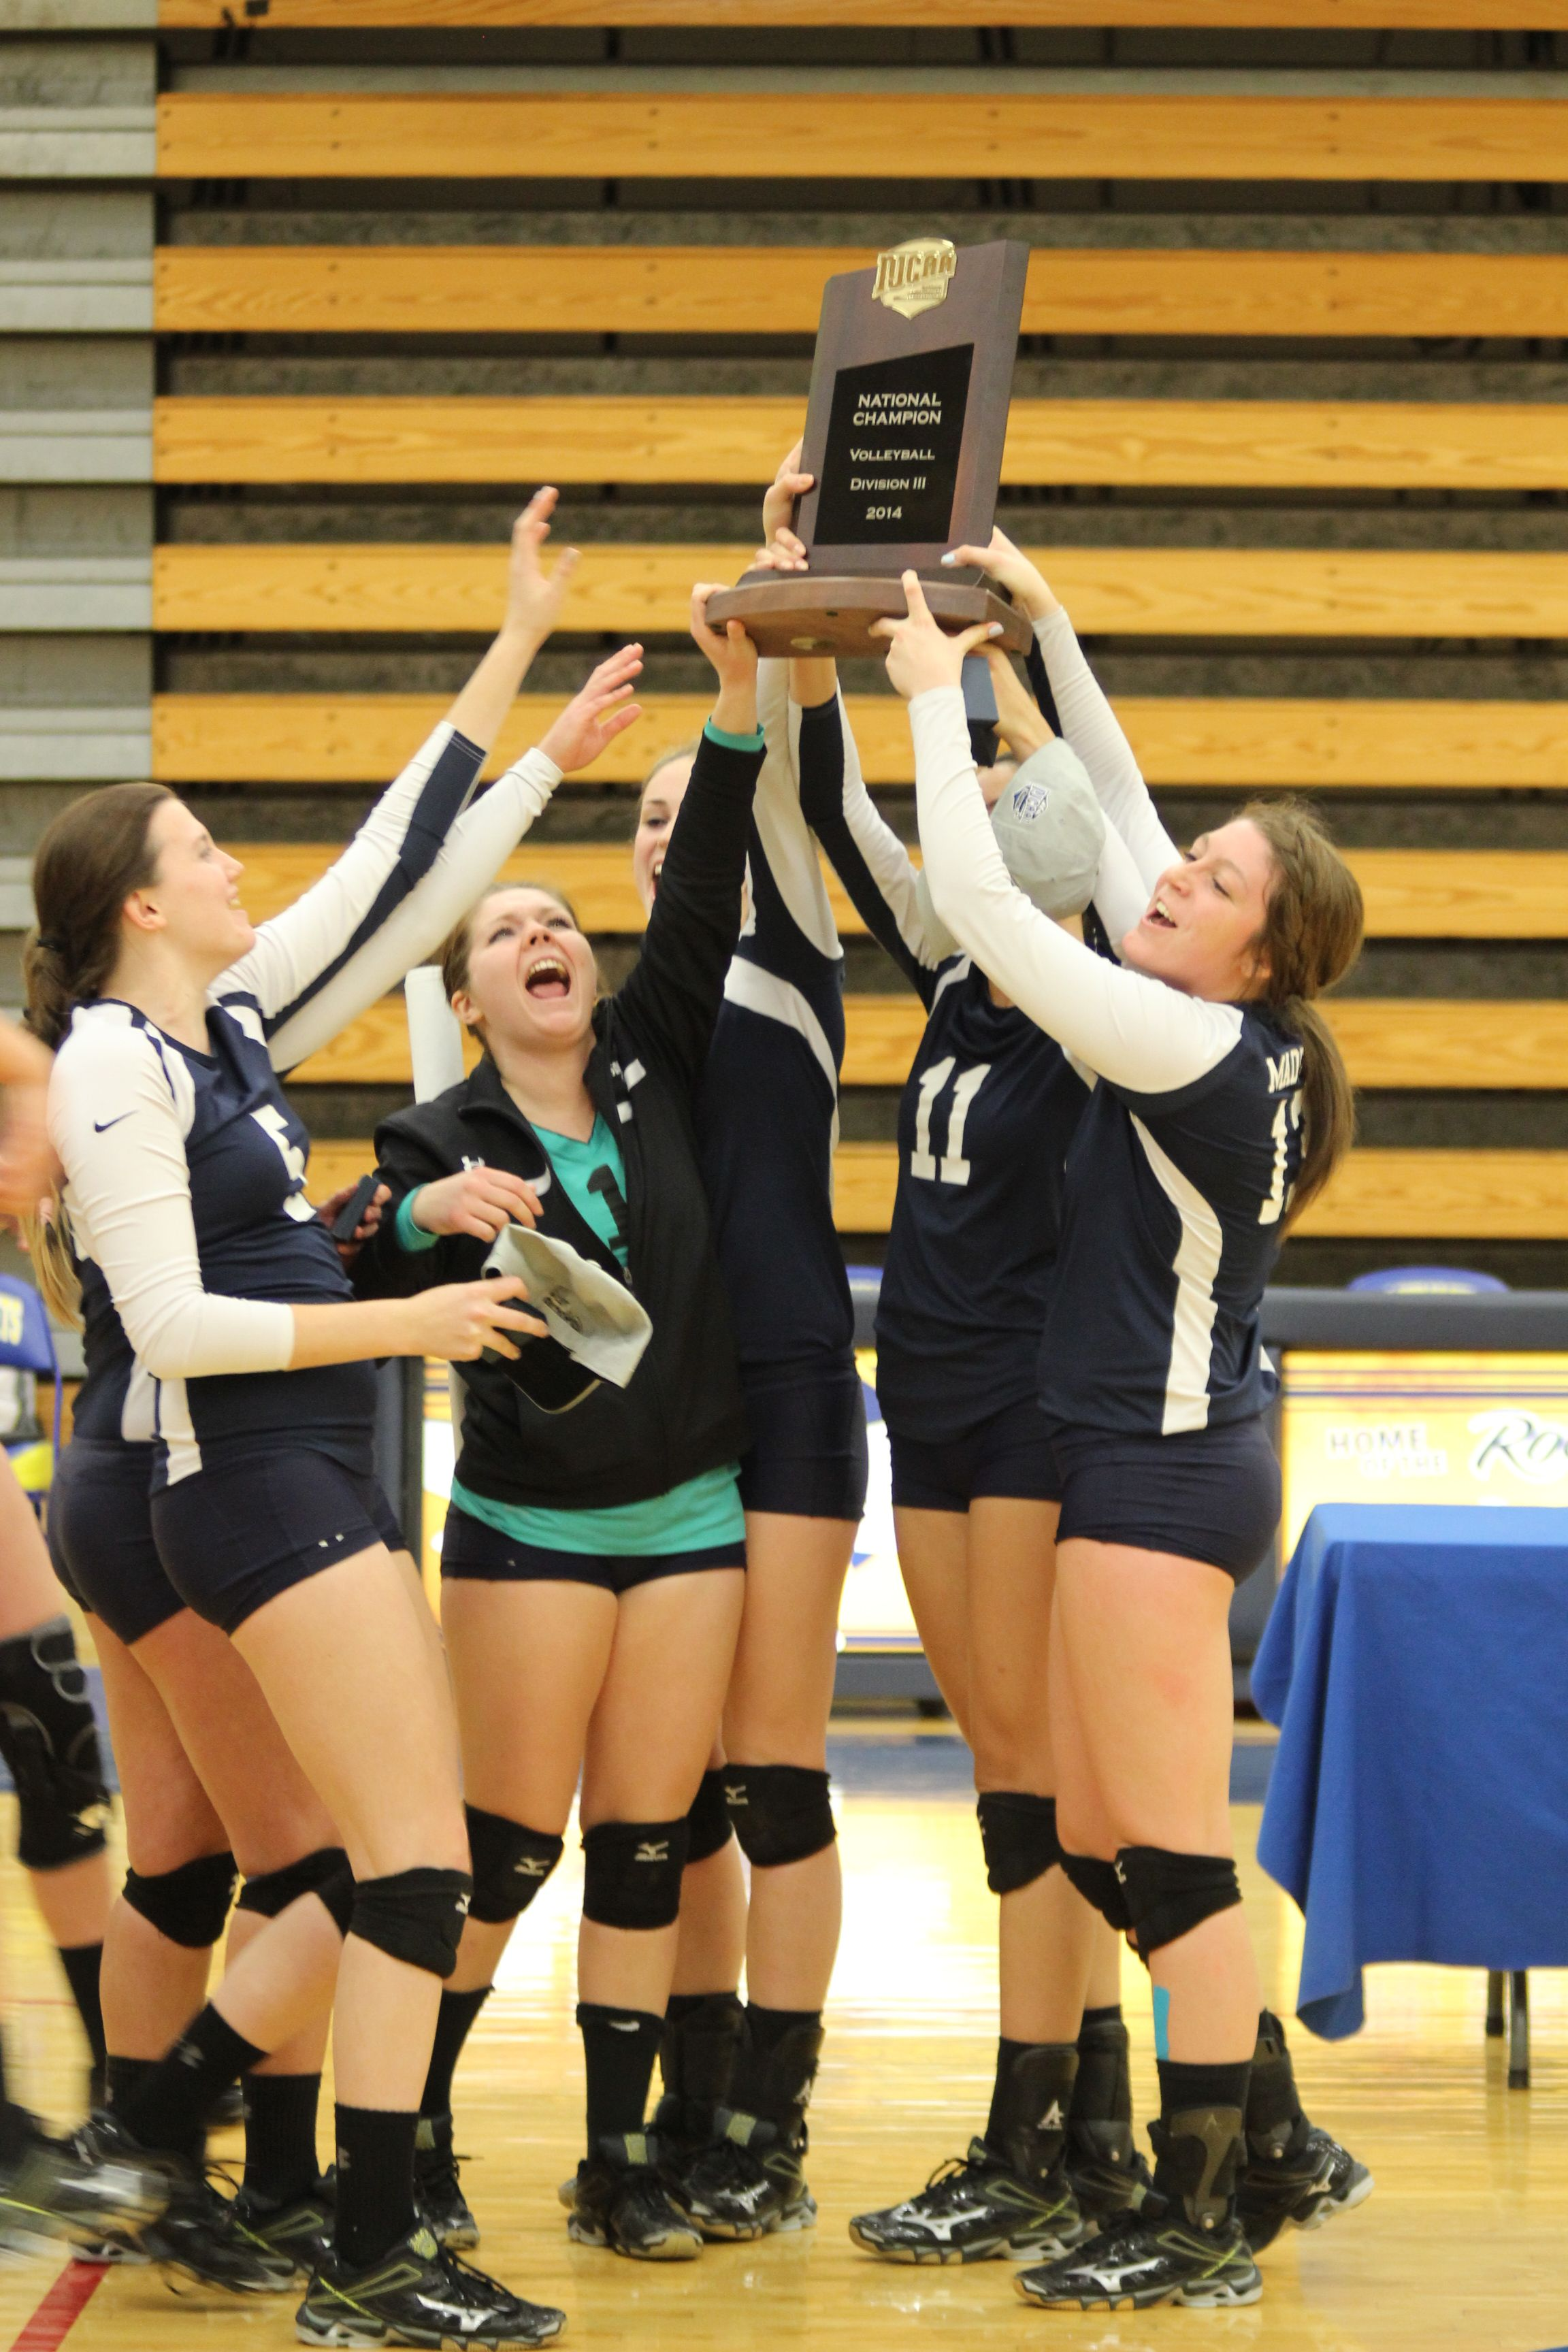 Brooke Gilbertson And The 2014 Team Hoisting Their Njcaa Diii National Championship Trophy High For All To See National Championship Women Volleyball Competing